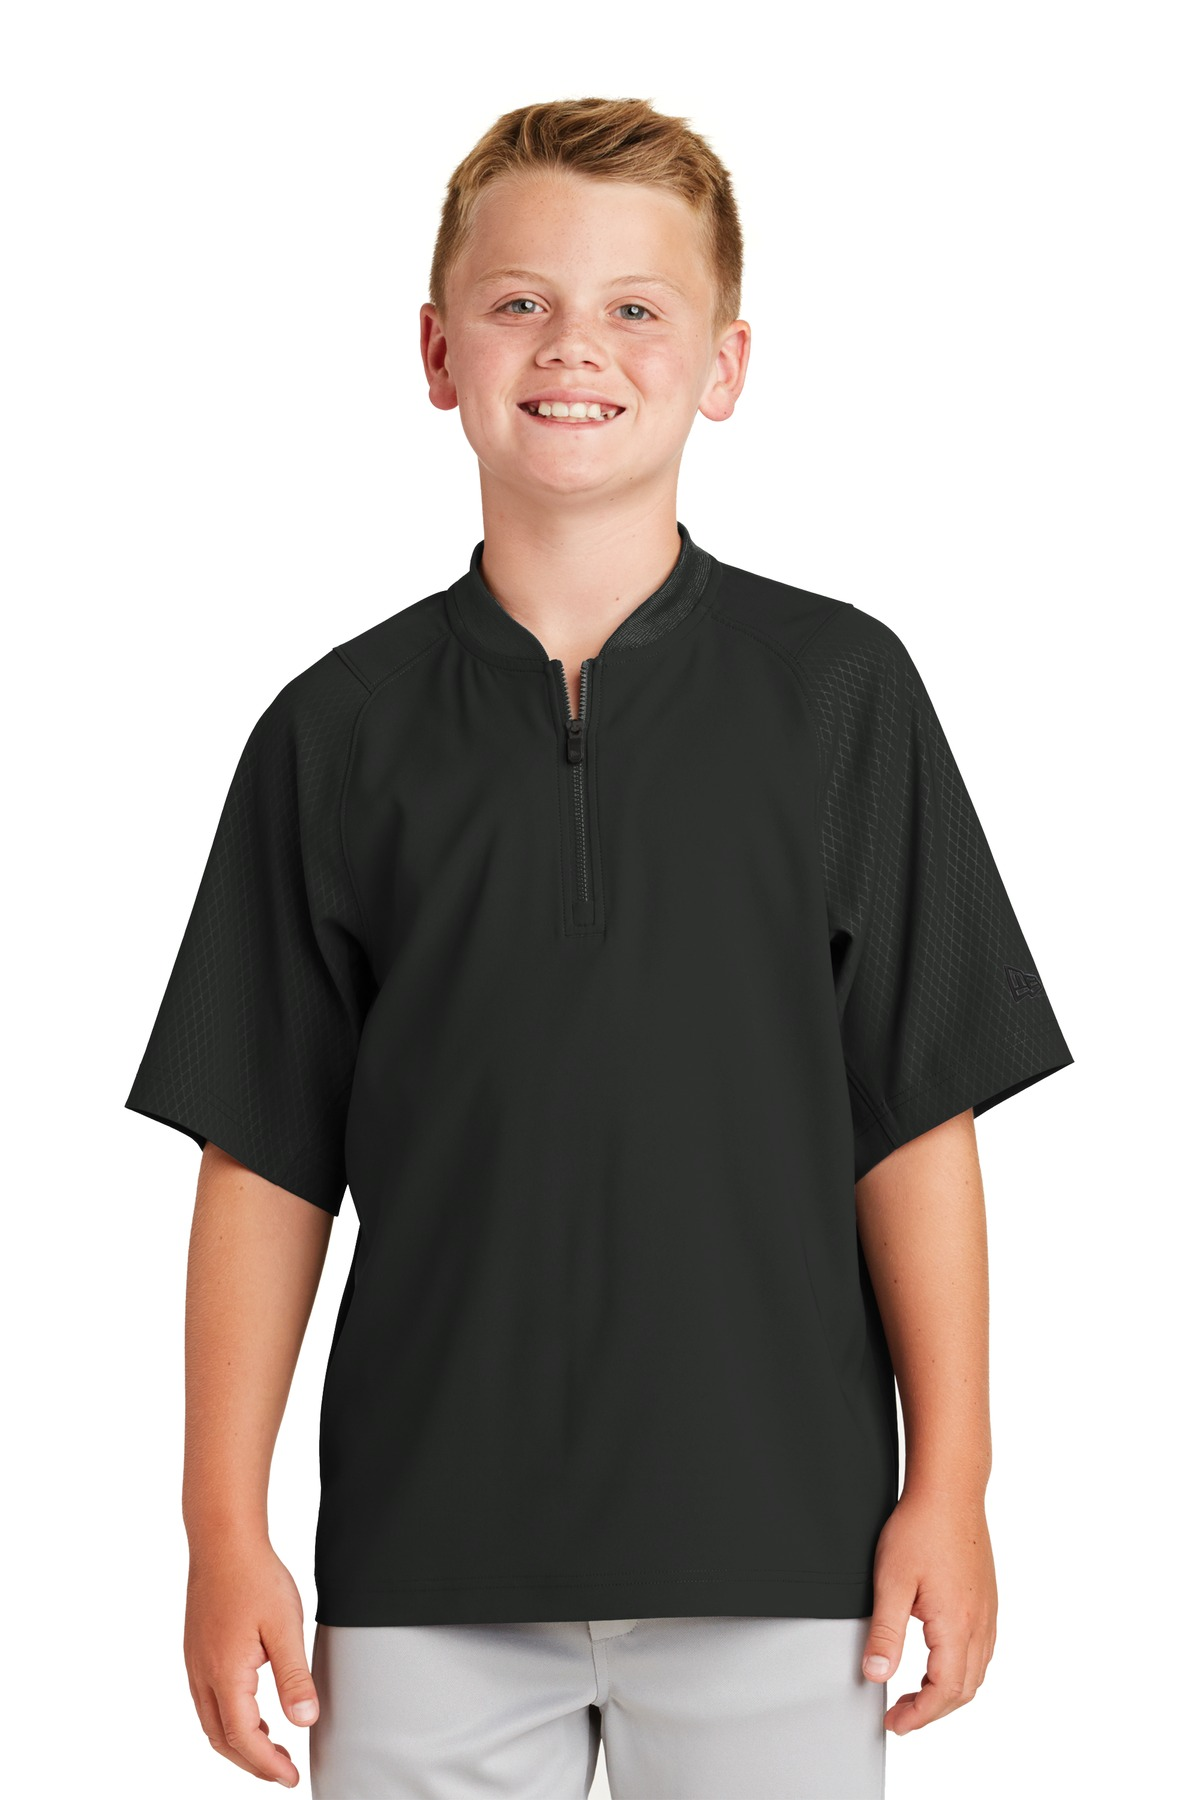 New Era  ®  Youth Cage Short Sleeve 1/4-Zip Jacket. YNEA600 - Black